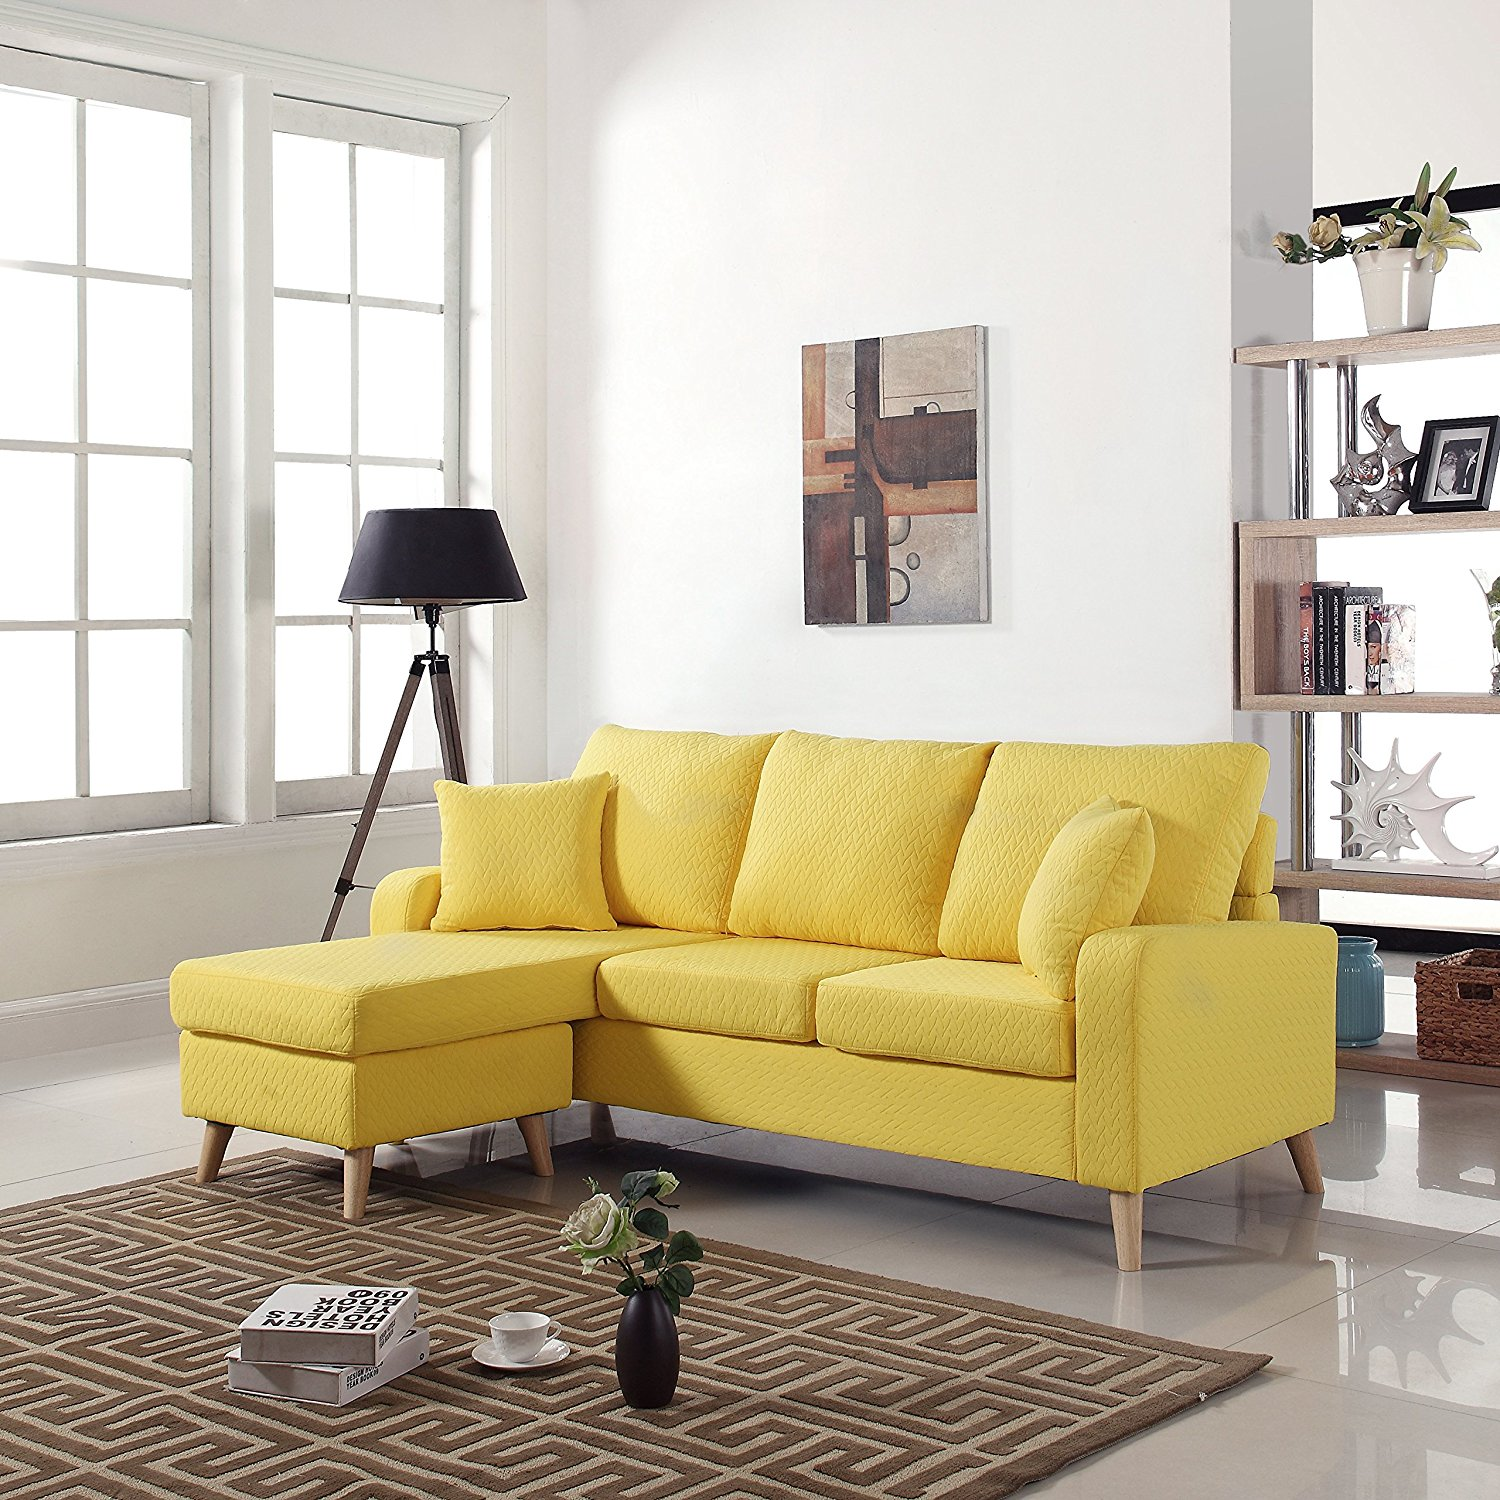 18 Jawdroppingly Cheap Sofa Sets You Must Buy For Living Room Style Spacez